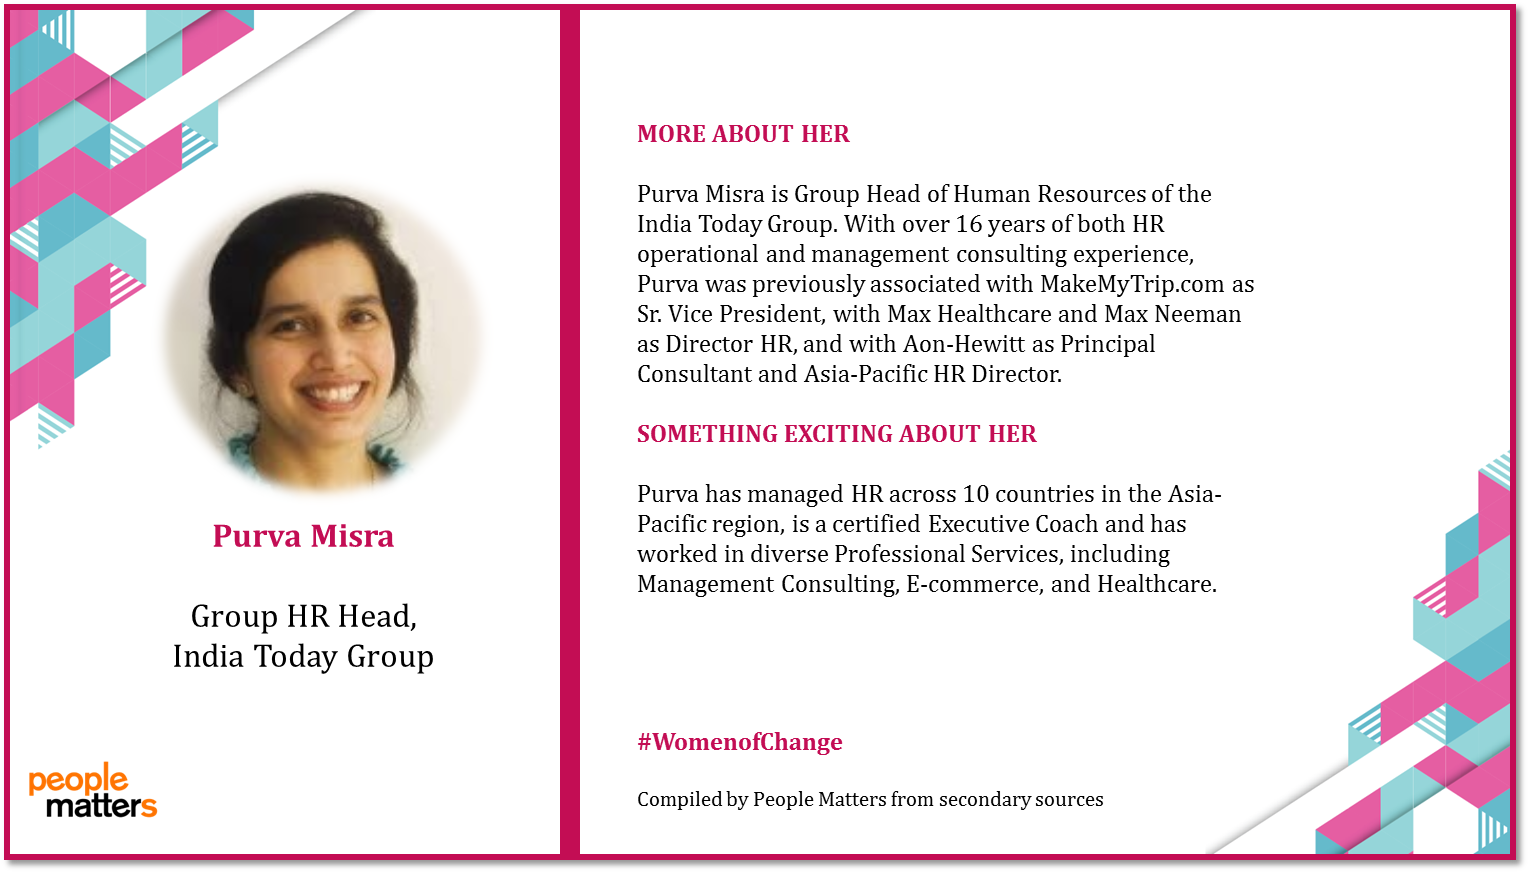 Purva_Misra_India_Today_Group_HR_Head